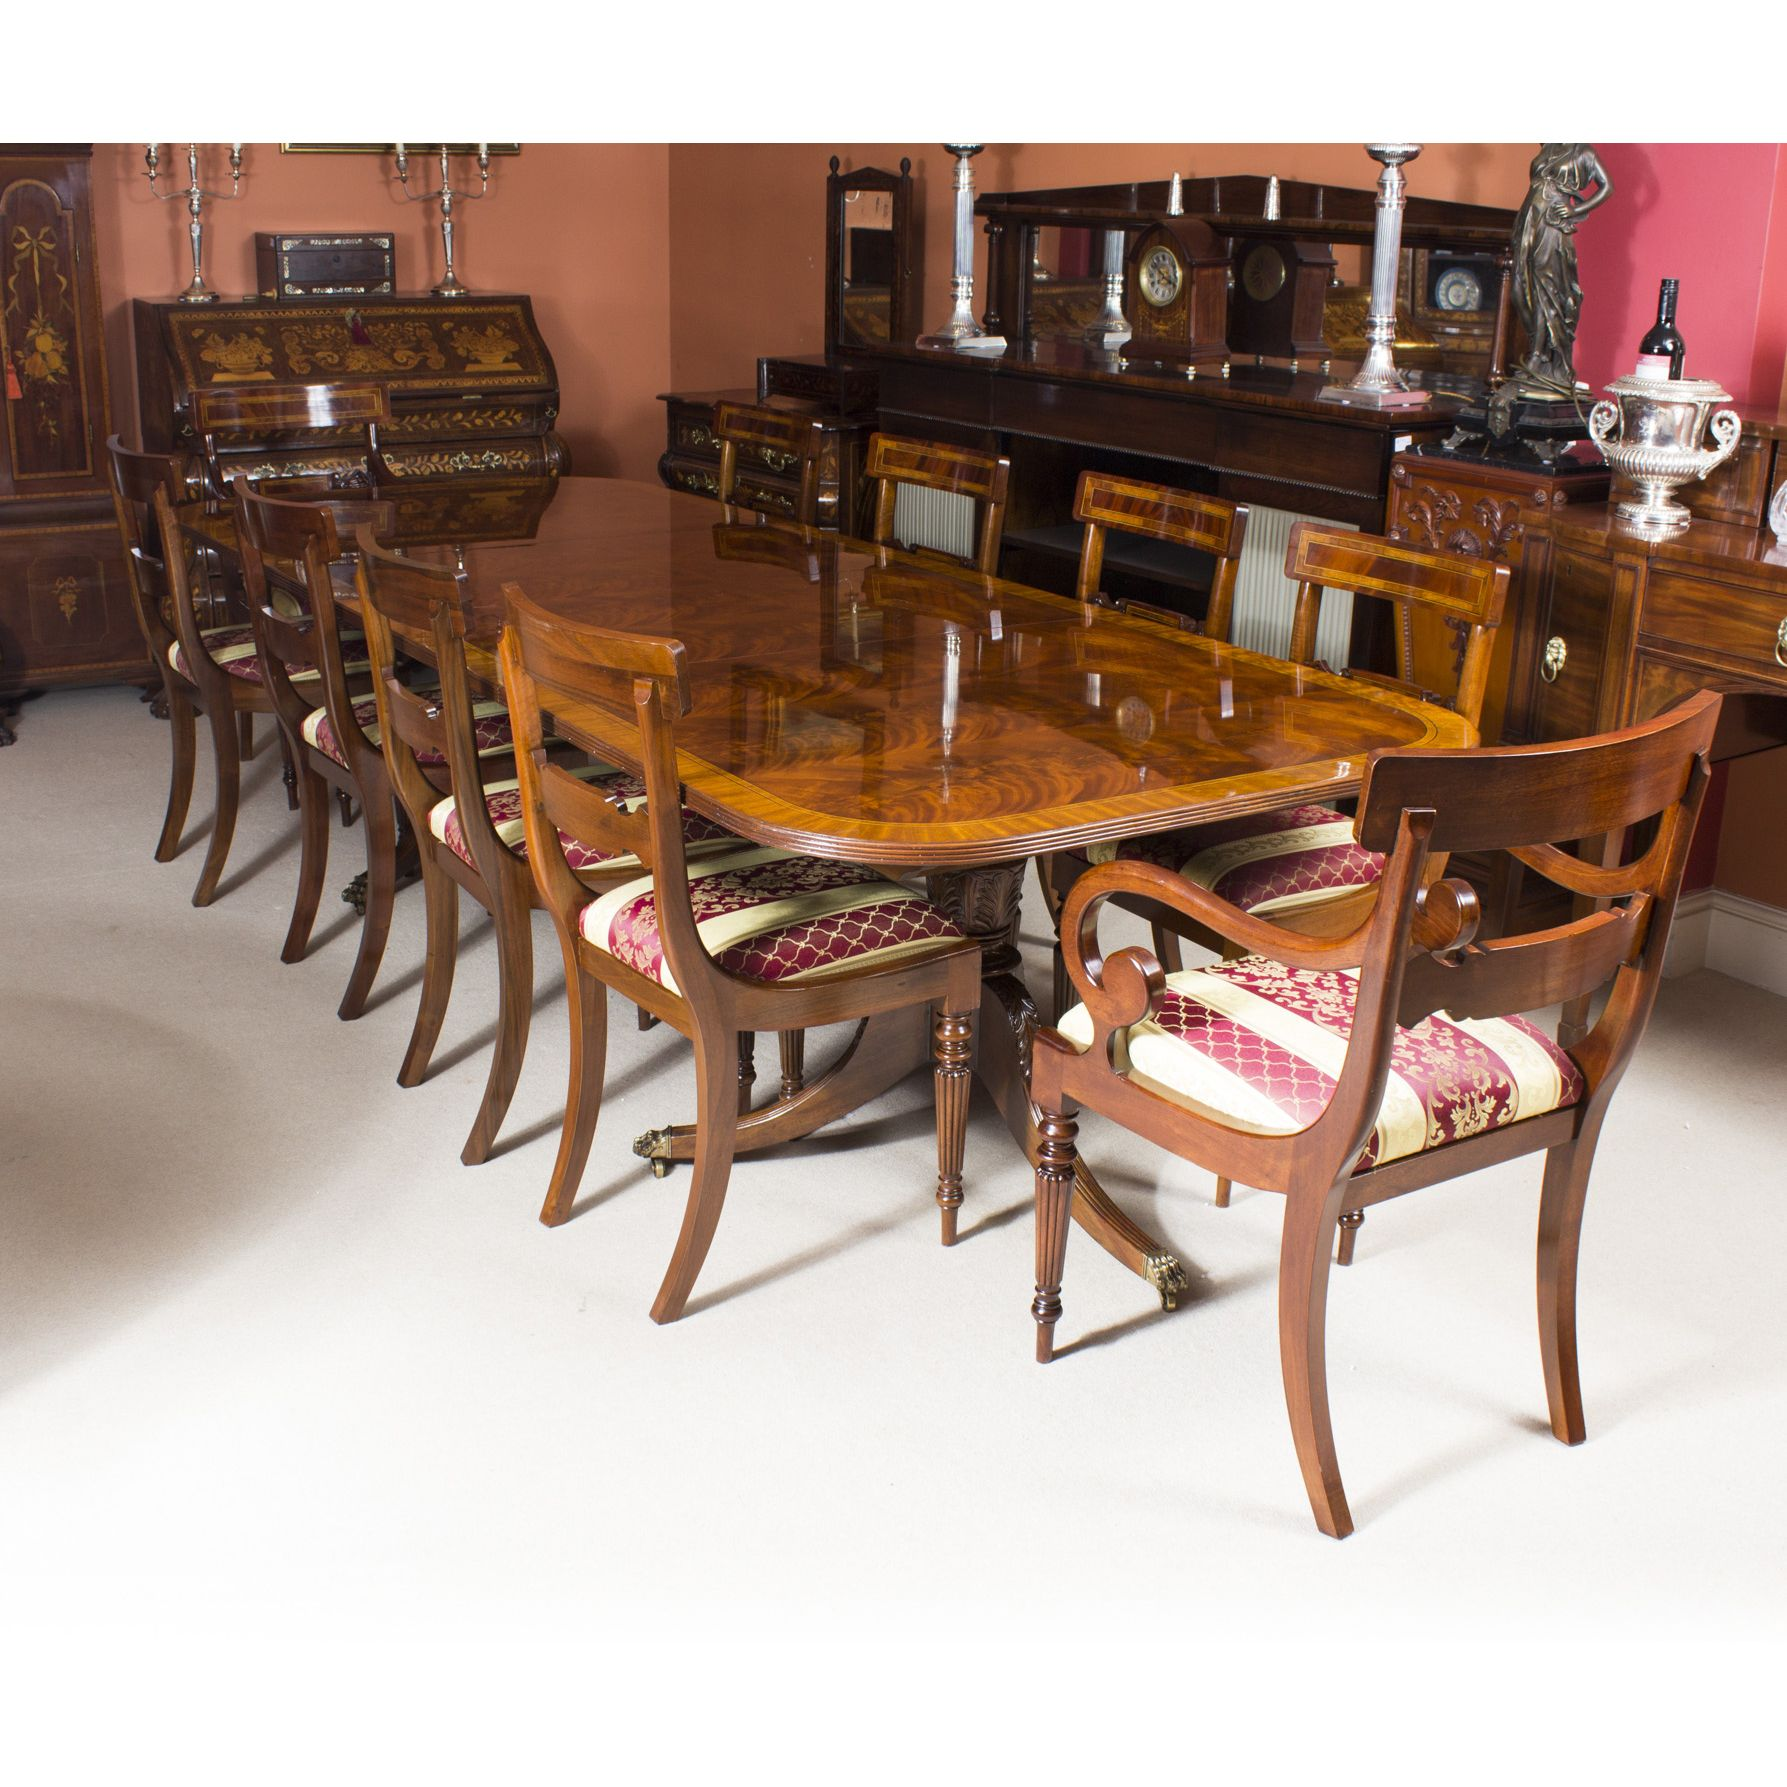 dining table with 10 chairs. Flame Mahogany 10ft Regency Style Dining Table \u0026 10 Chairs With